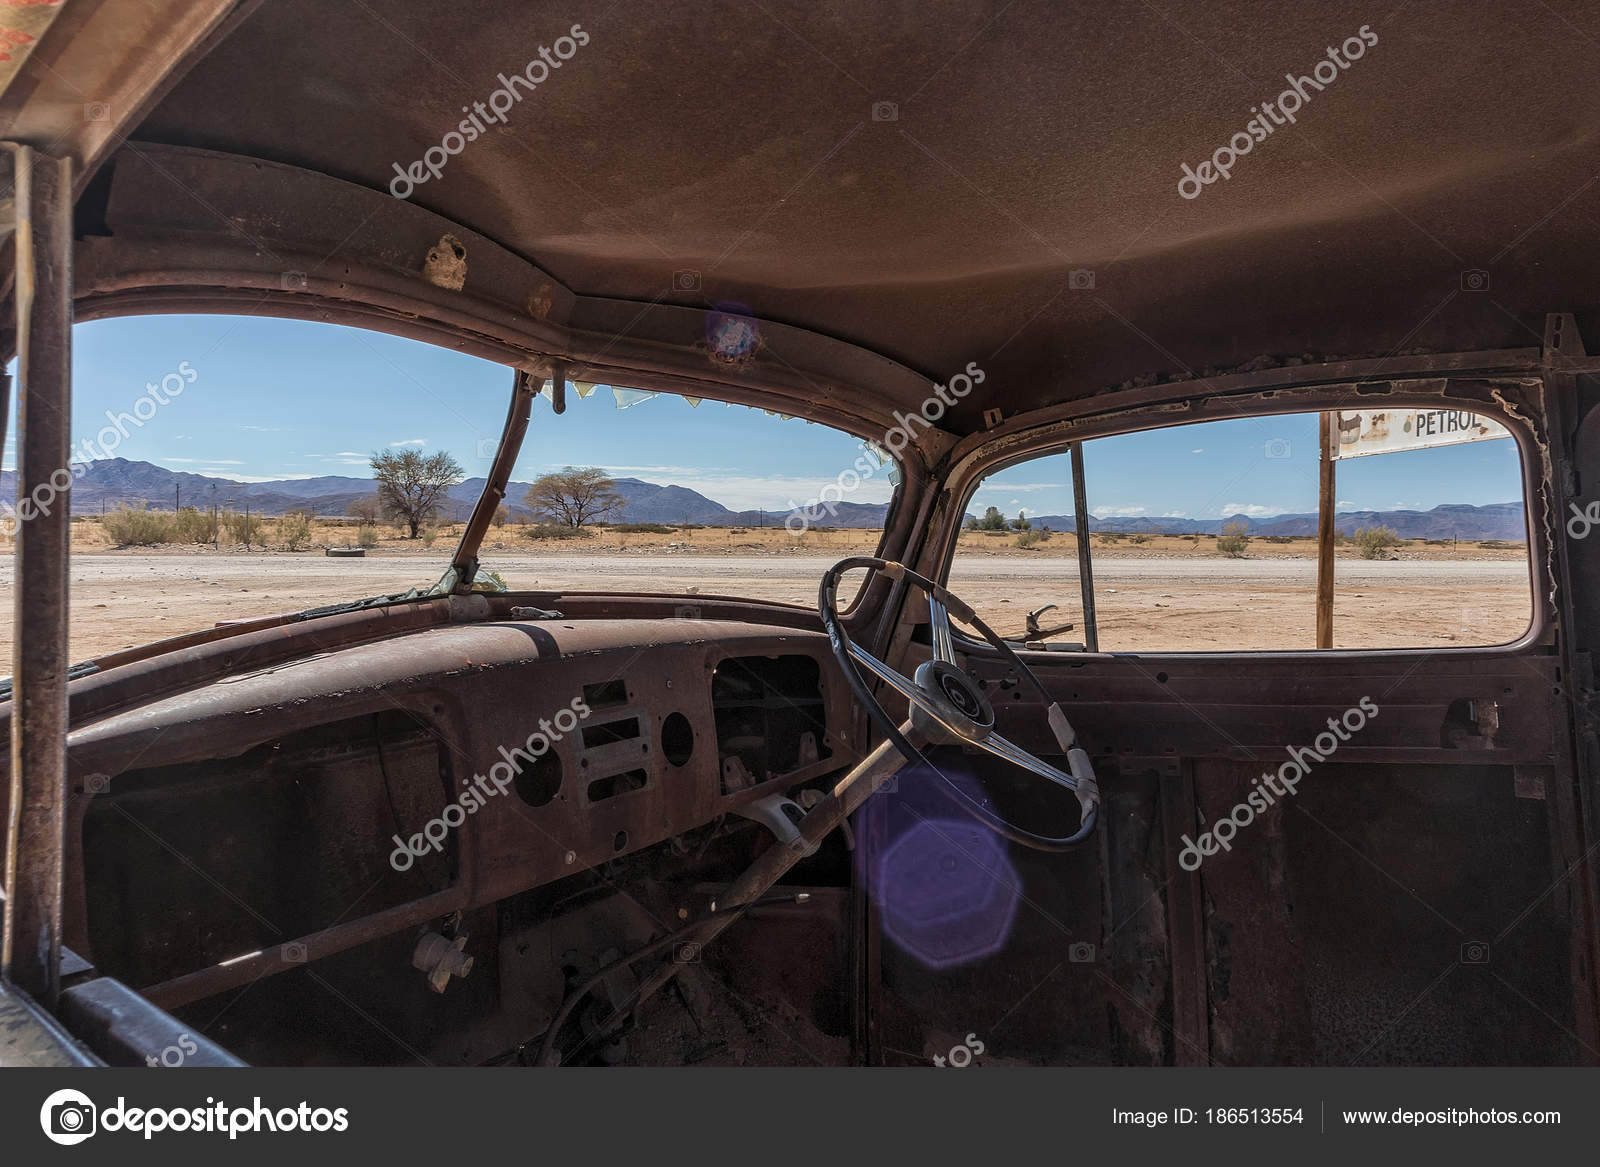 Abandoned Old Car Interior In Namibia Desert Place Known As